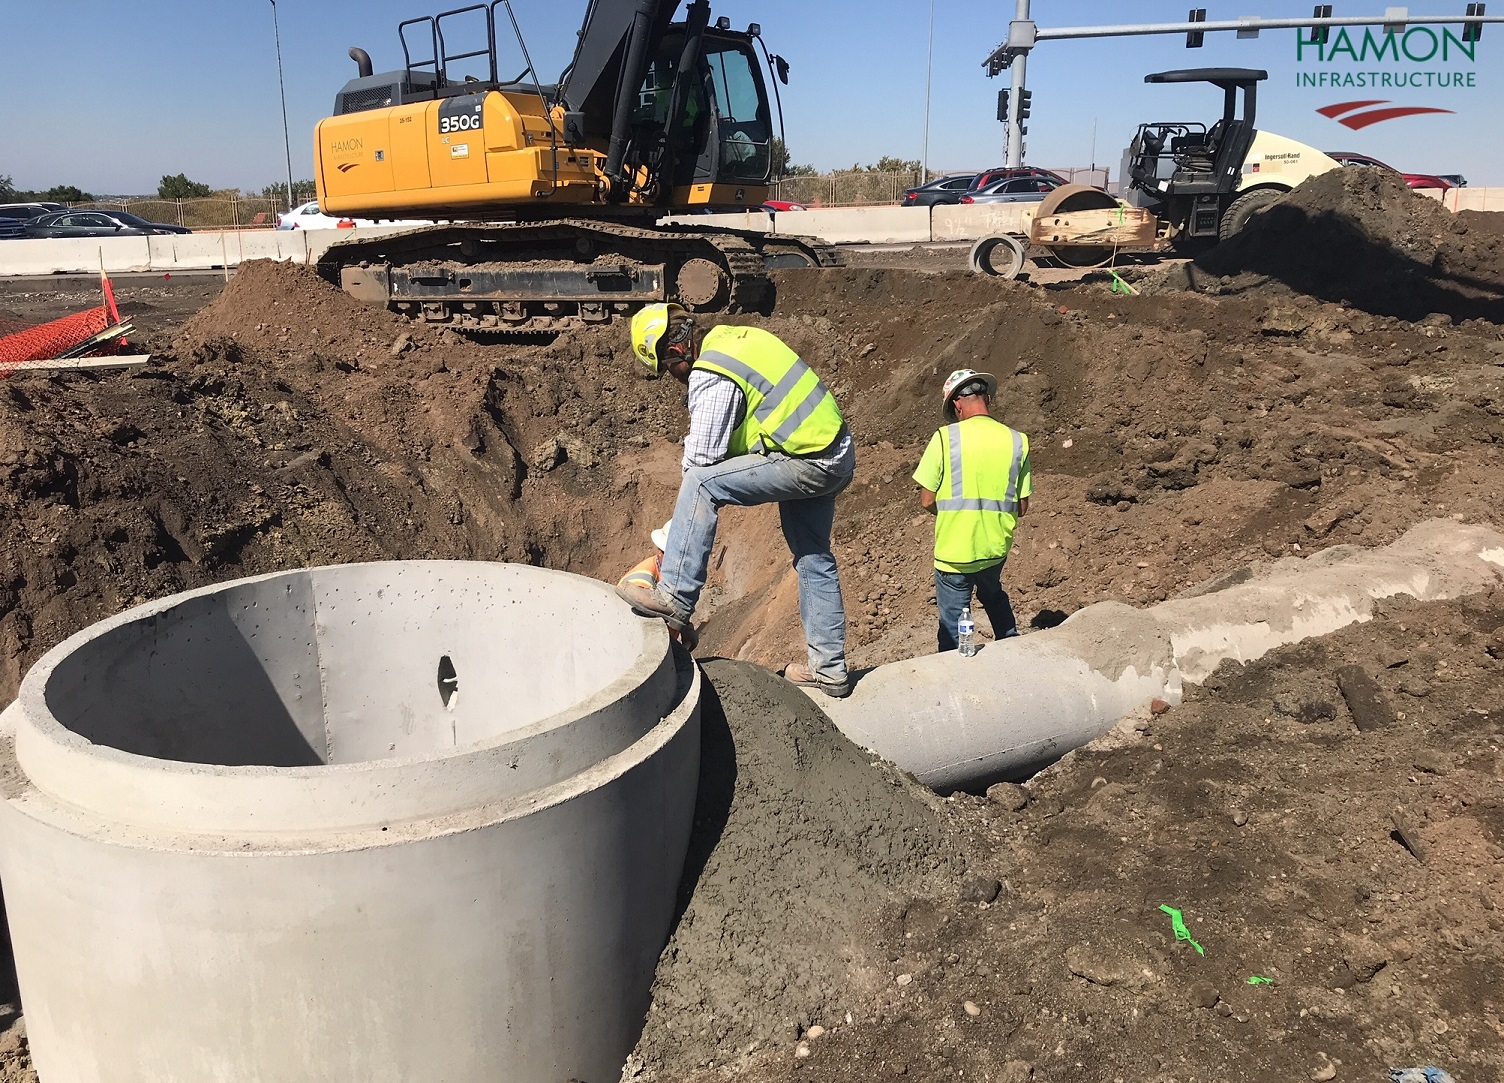 120th Avenue, southbound I-25 on-ramp, installation of manhole and drainage pipe